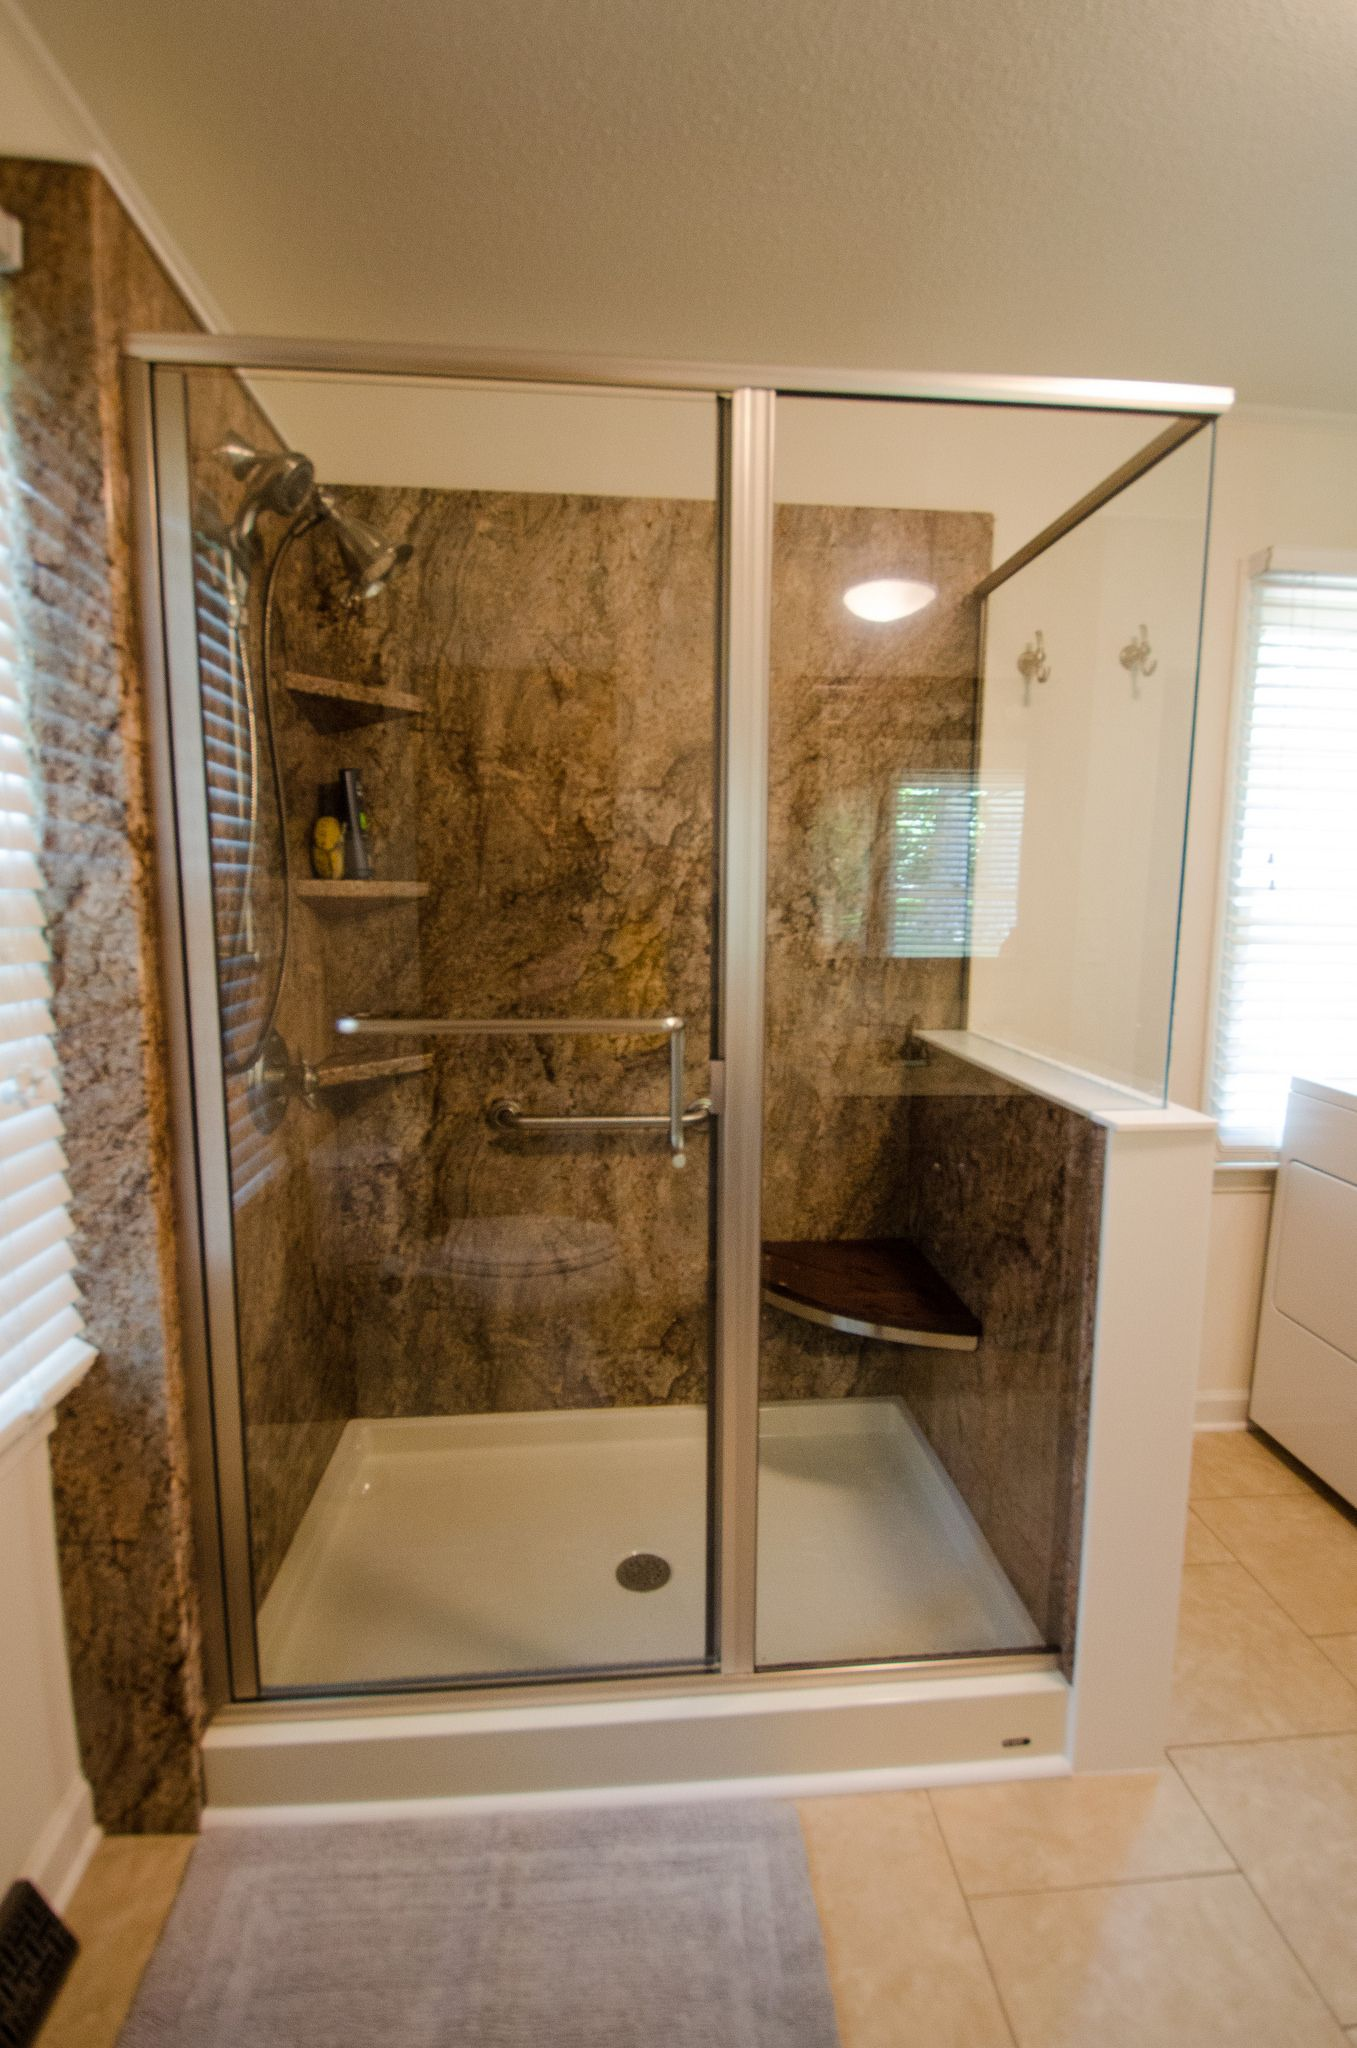 JH100 AFTER0414 Complete bathrooms Grab bars and Bath remodel